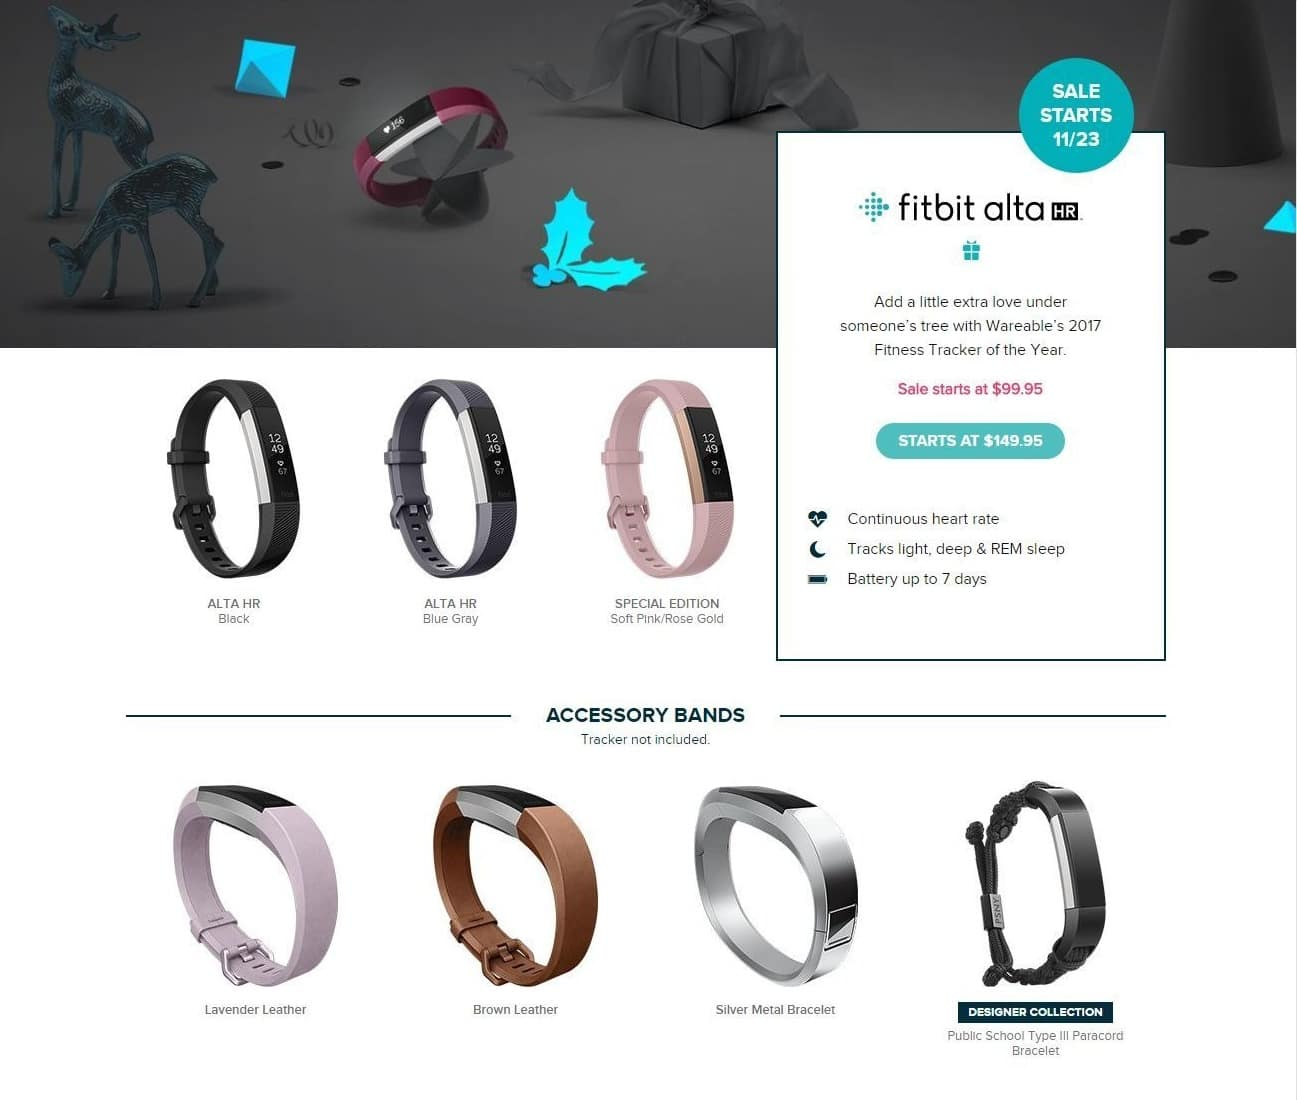 Fitbit Black Friday: Fitbit Alta HR - $99.95 & UP